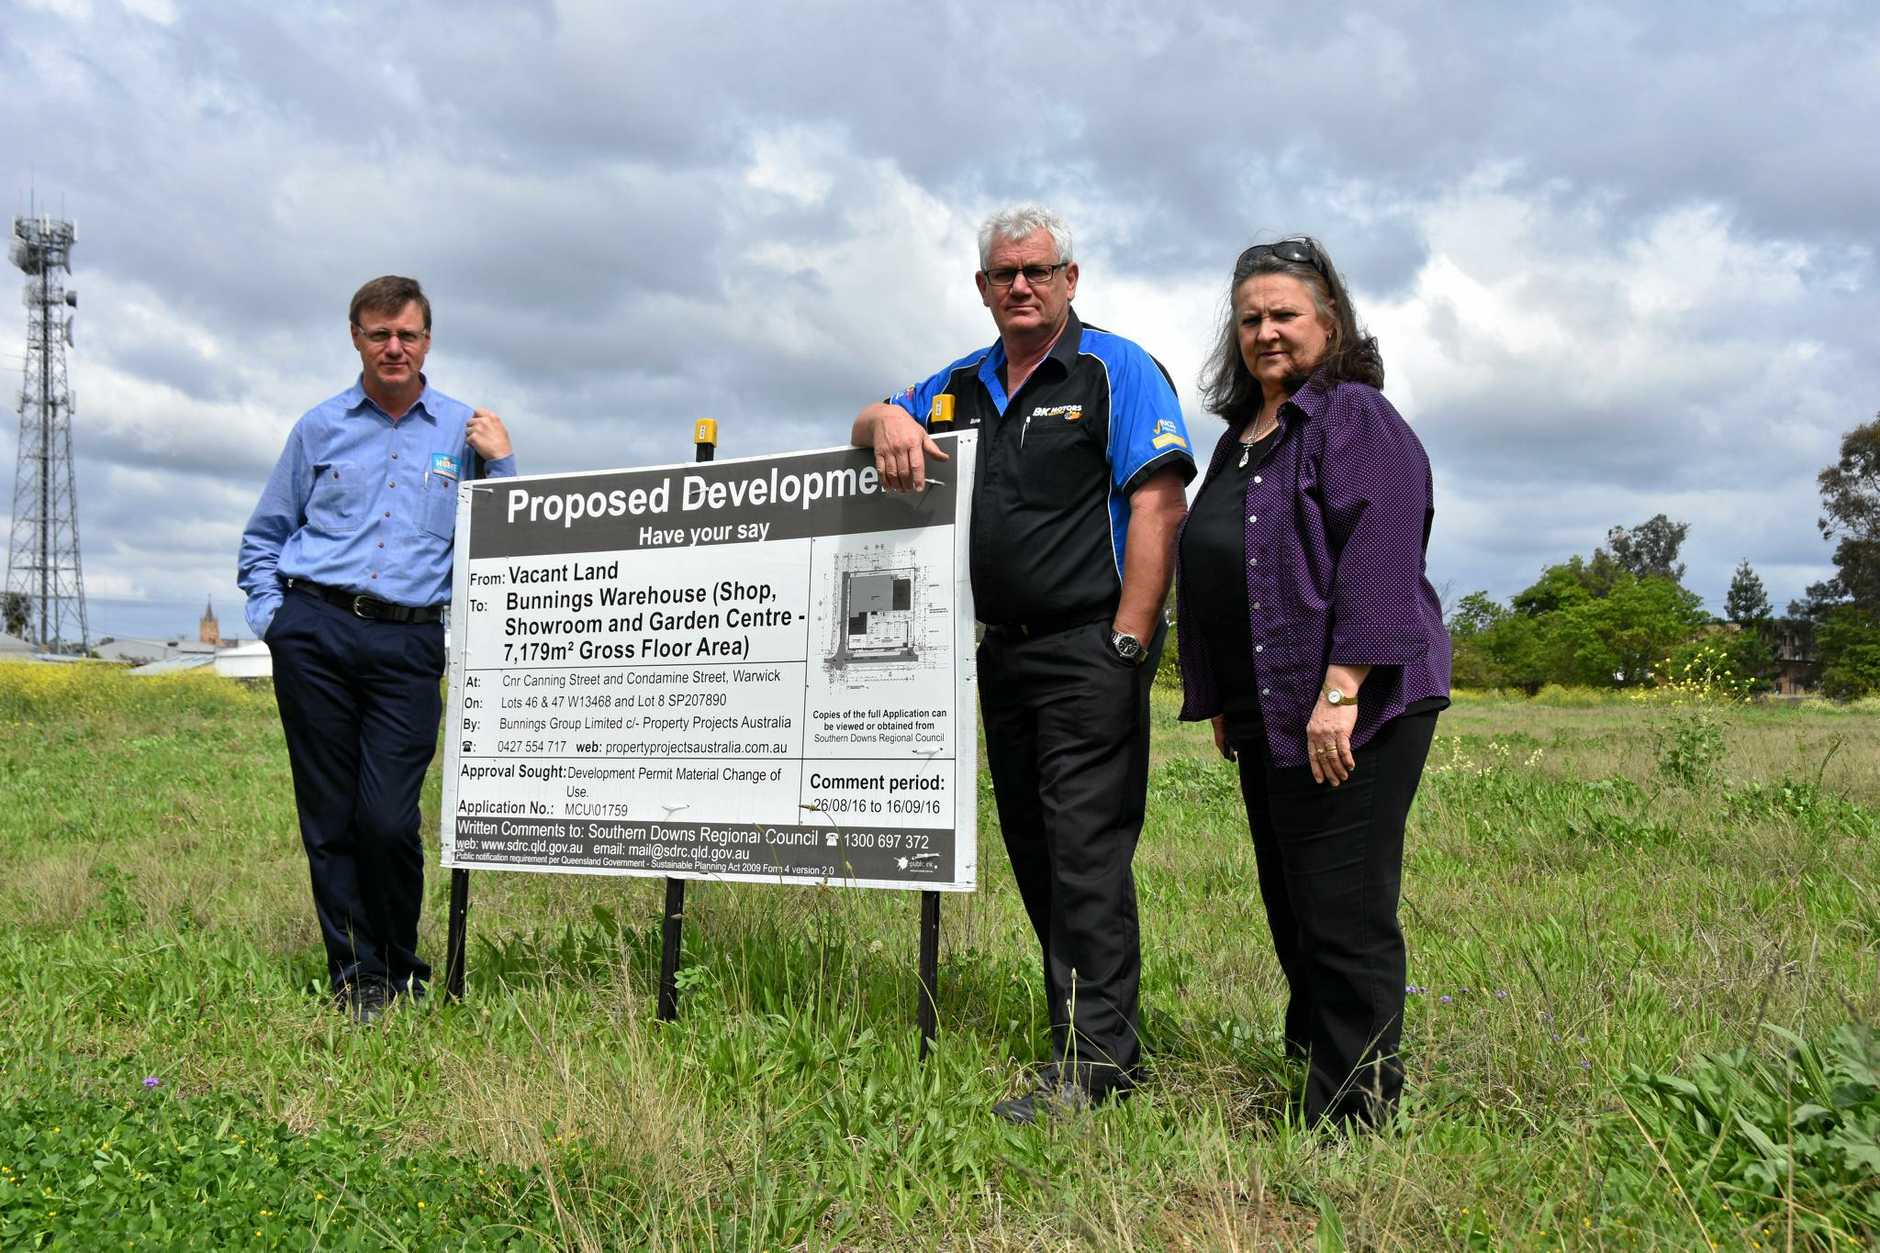 STORM BREWING: Alan Olsen, David Kemp and Helen Harm all hold grave concerns over the proposed Bunnings development.